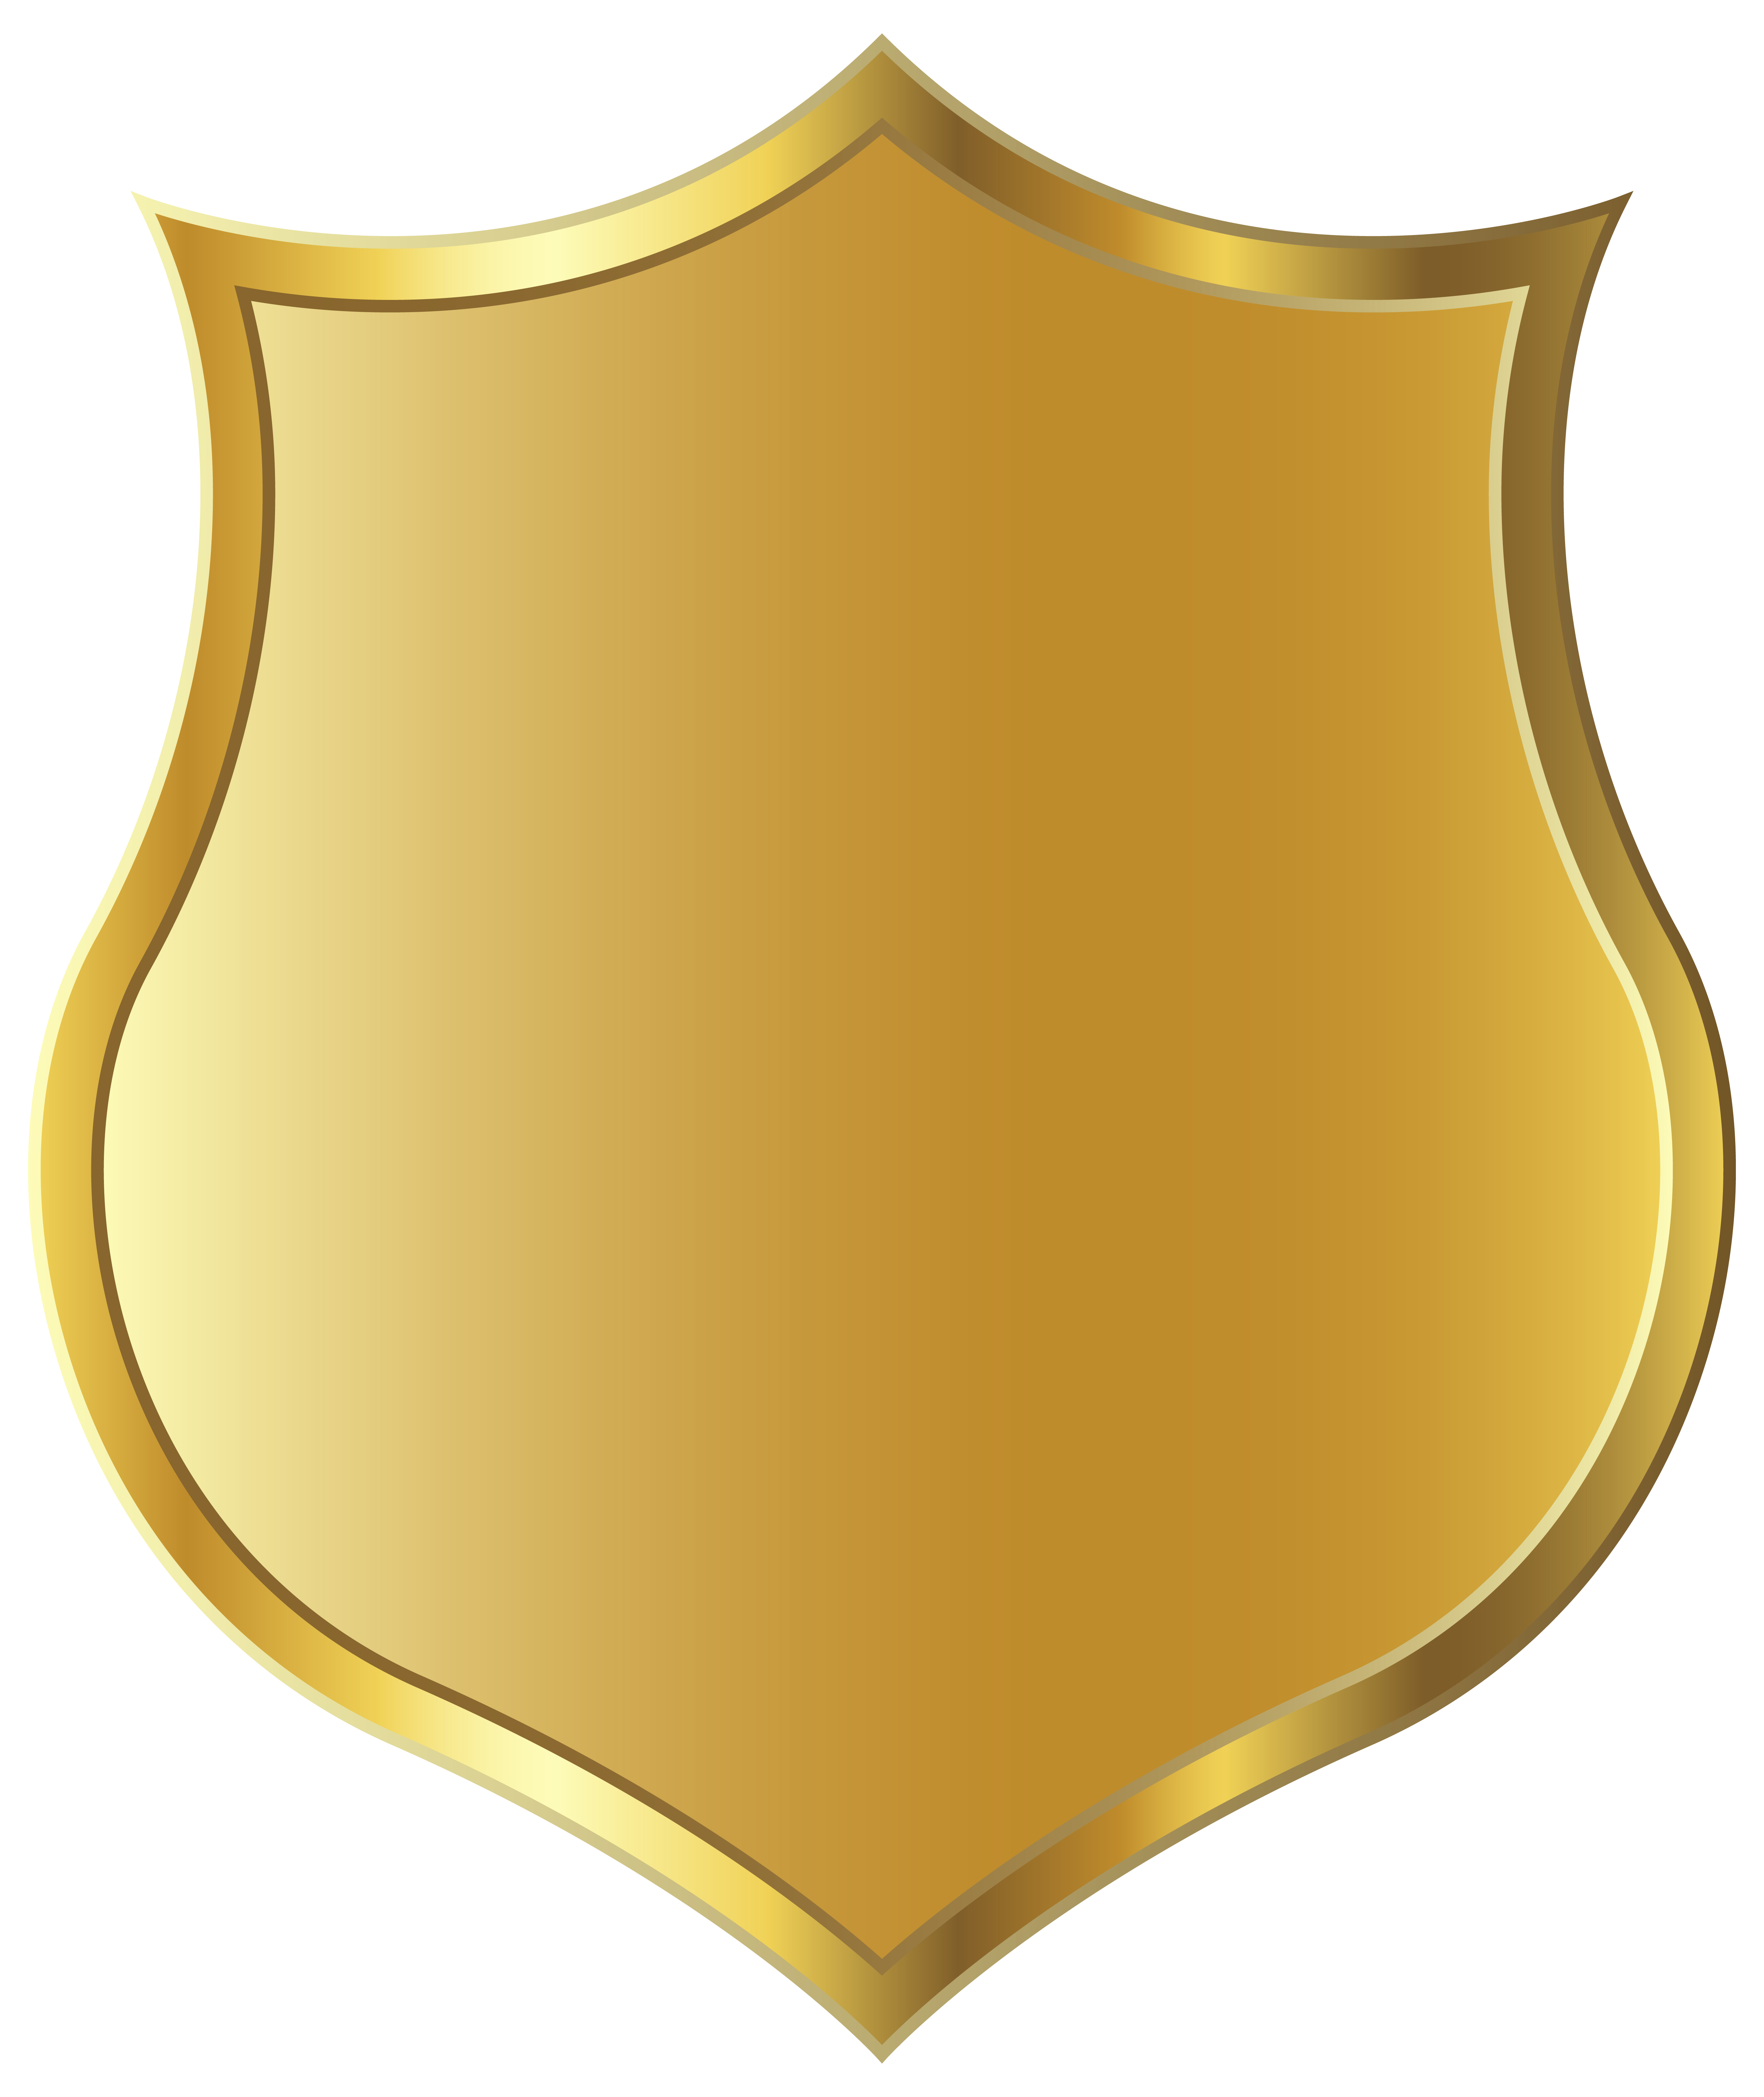 Gold Badge Template PNG Image.